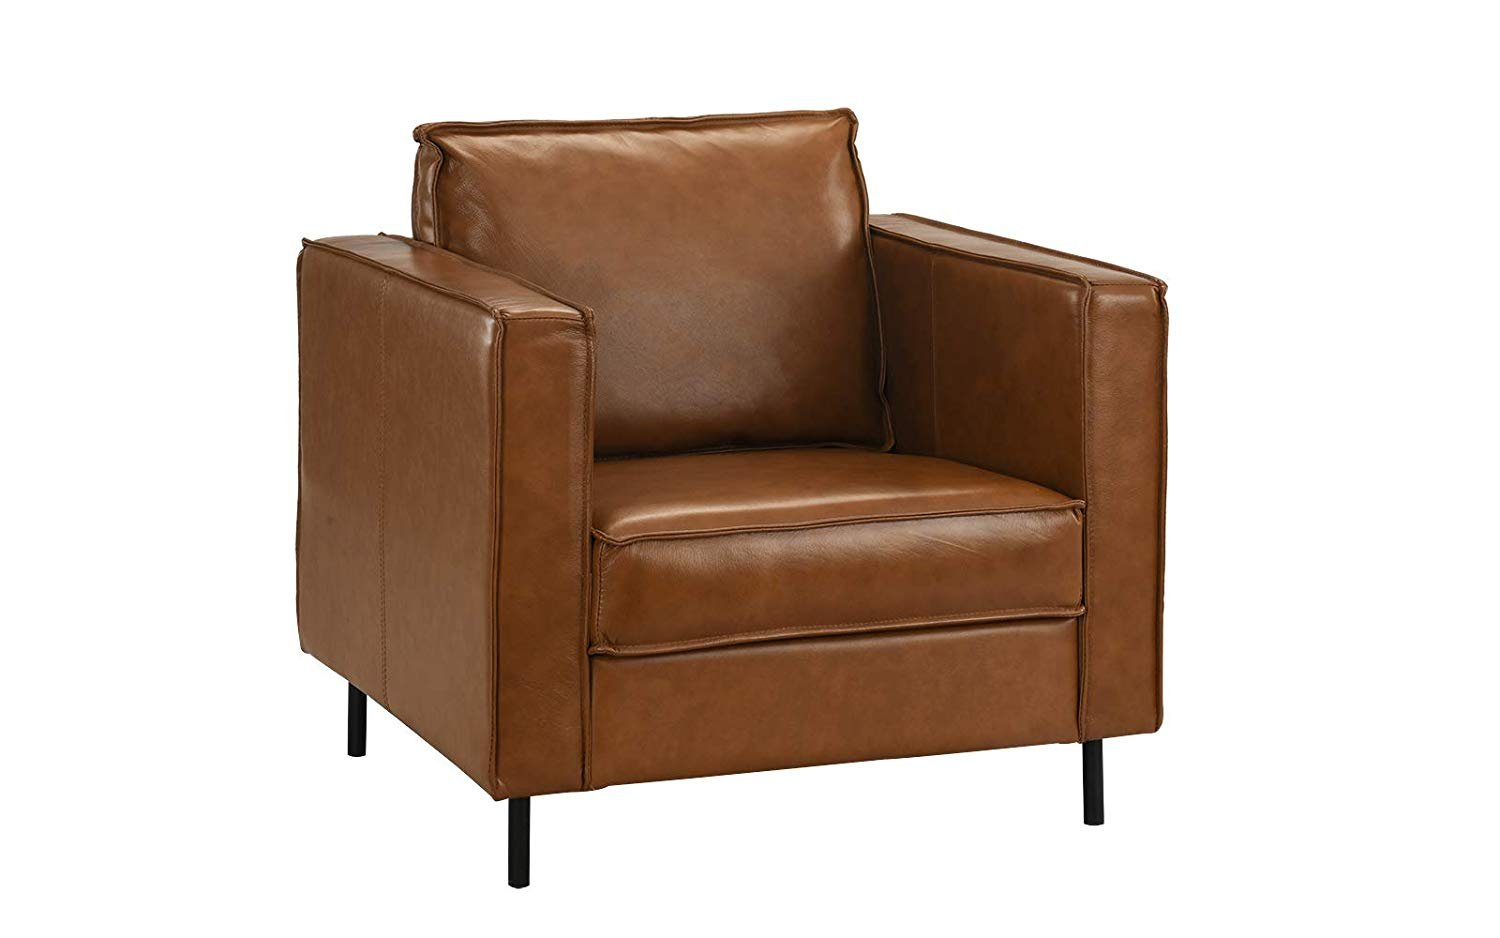 Picture of: Mid Century Living Room Leather Armchair Accent Chair Camel Brown Walmart Com Walmart Com